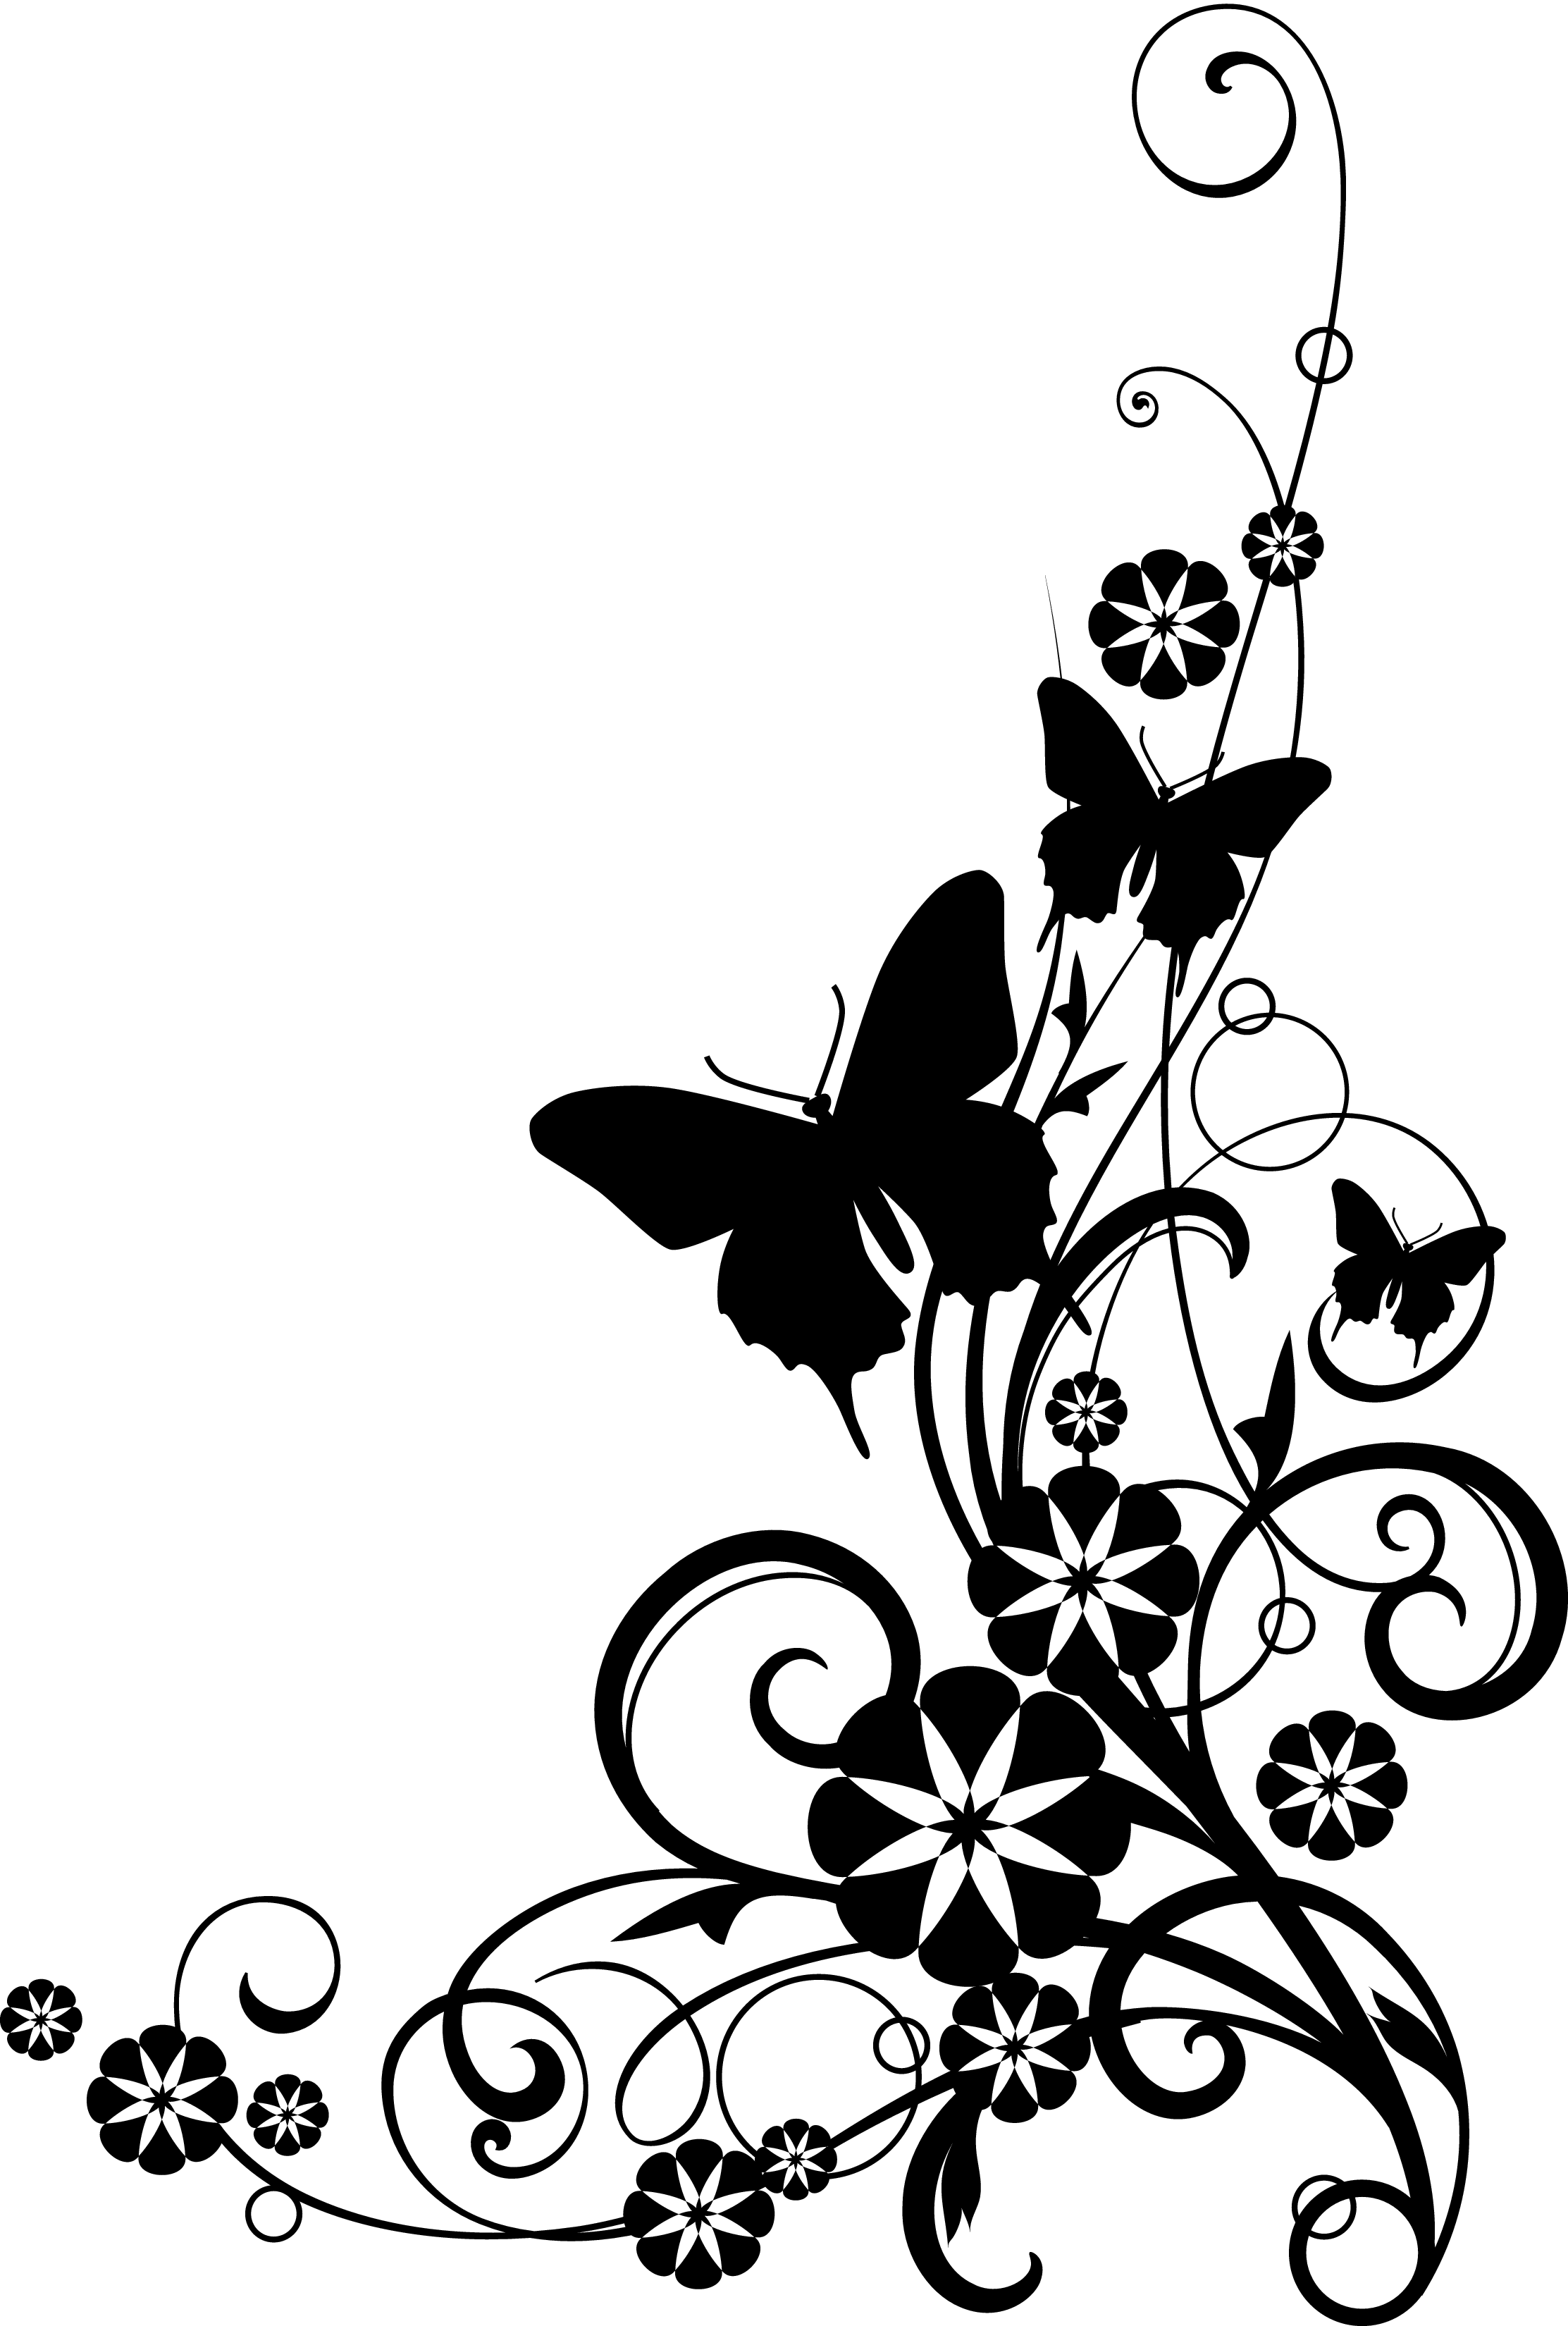 pin by kayla fox on flowers tree flourish silhouettes vectors rh pinterest com Black and White Liar Diversity Hands